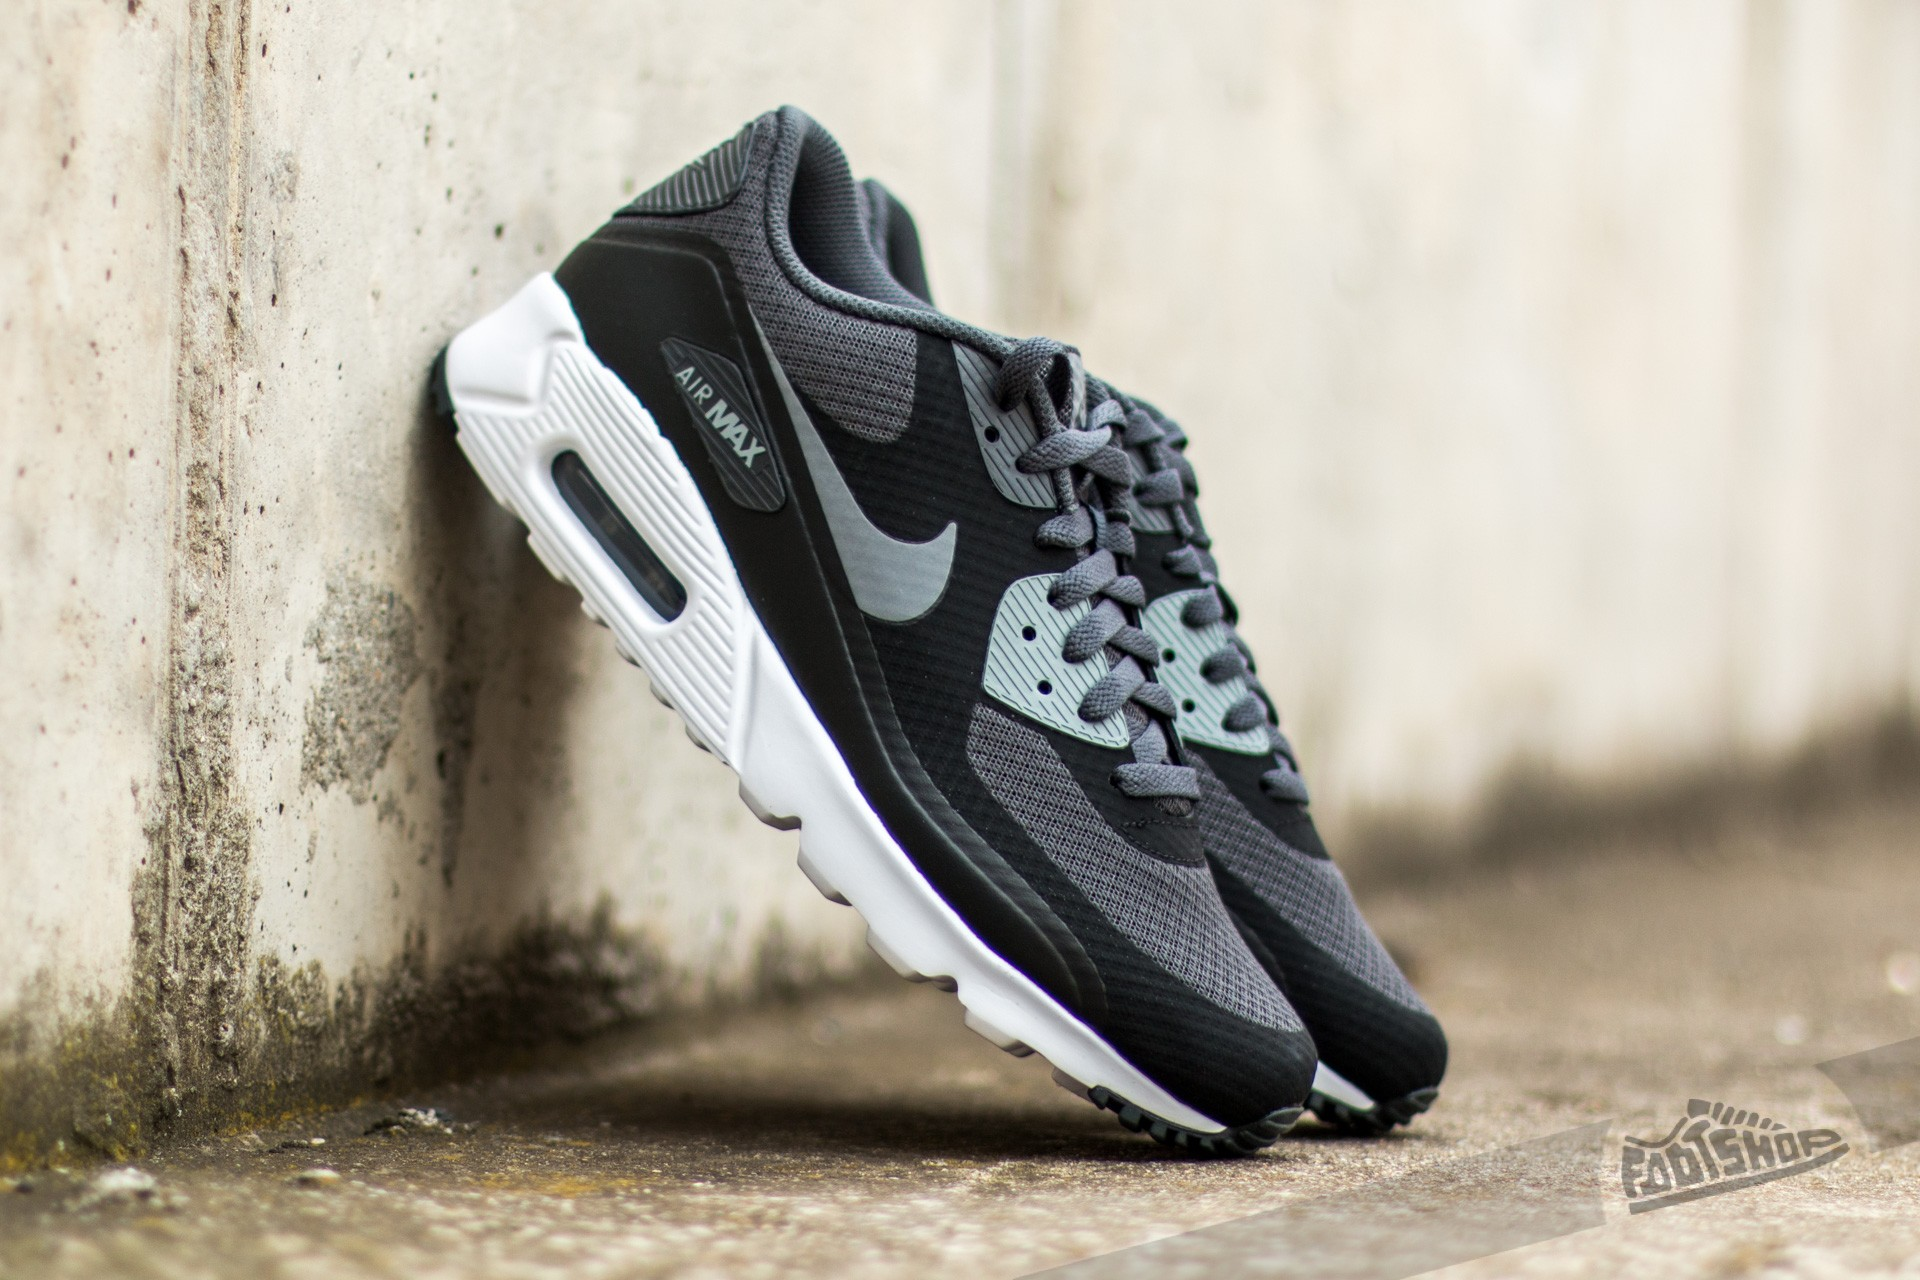 premium selection cd8c2 2330e Nike Air Max 90 Ultra Essential Black  Cool Grey-Anthracite-White